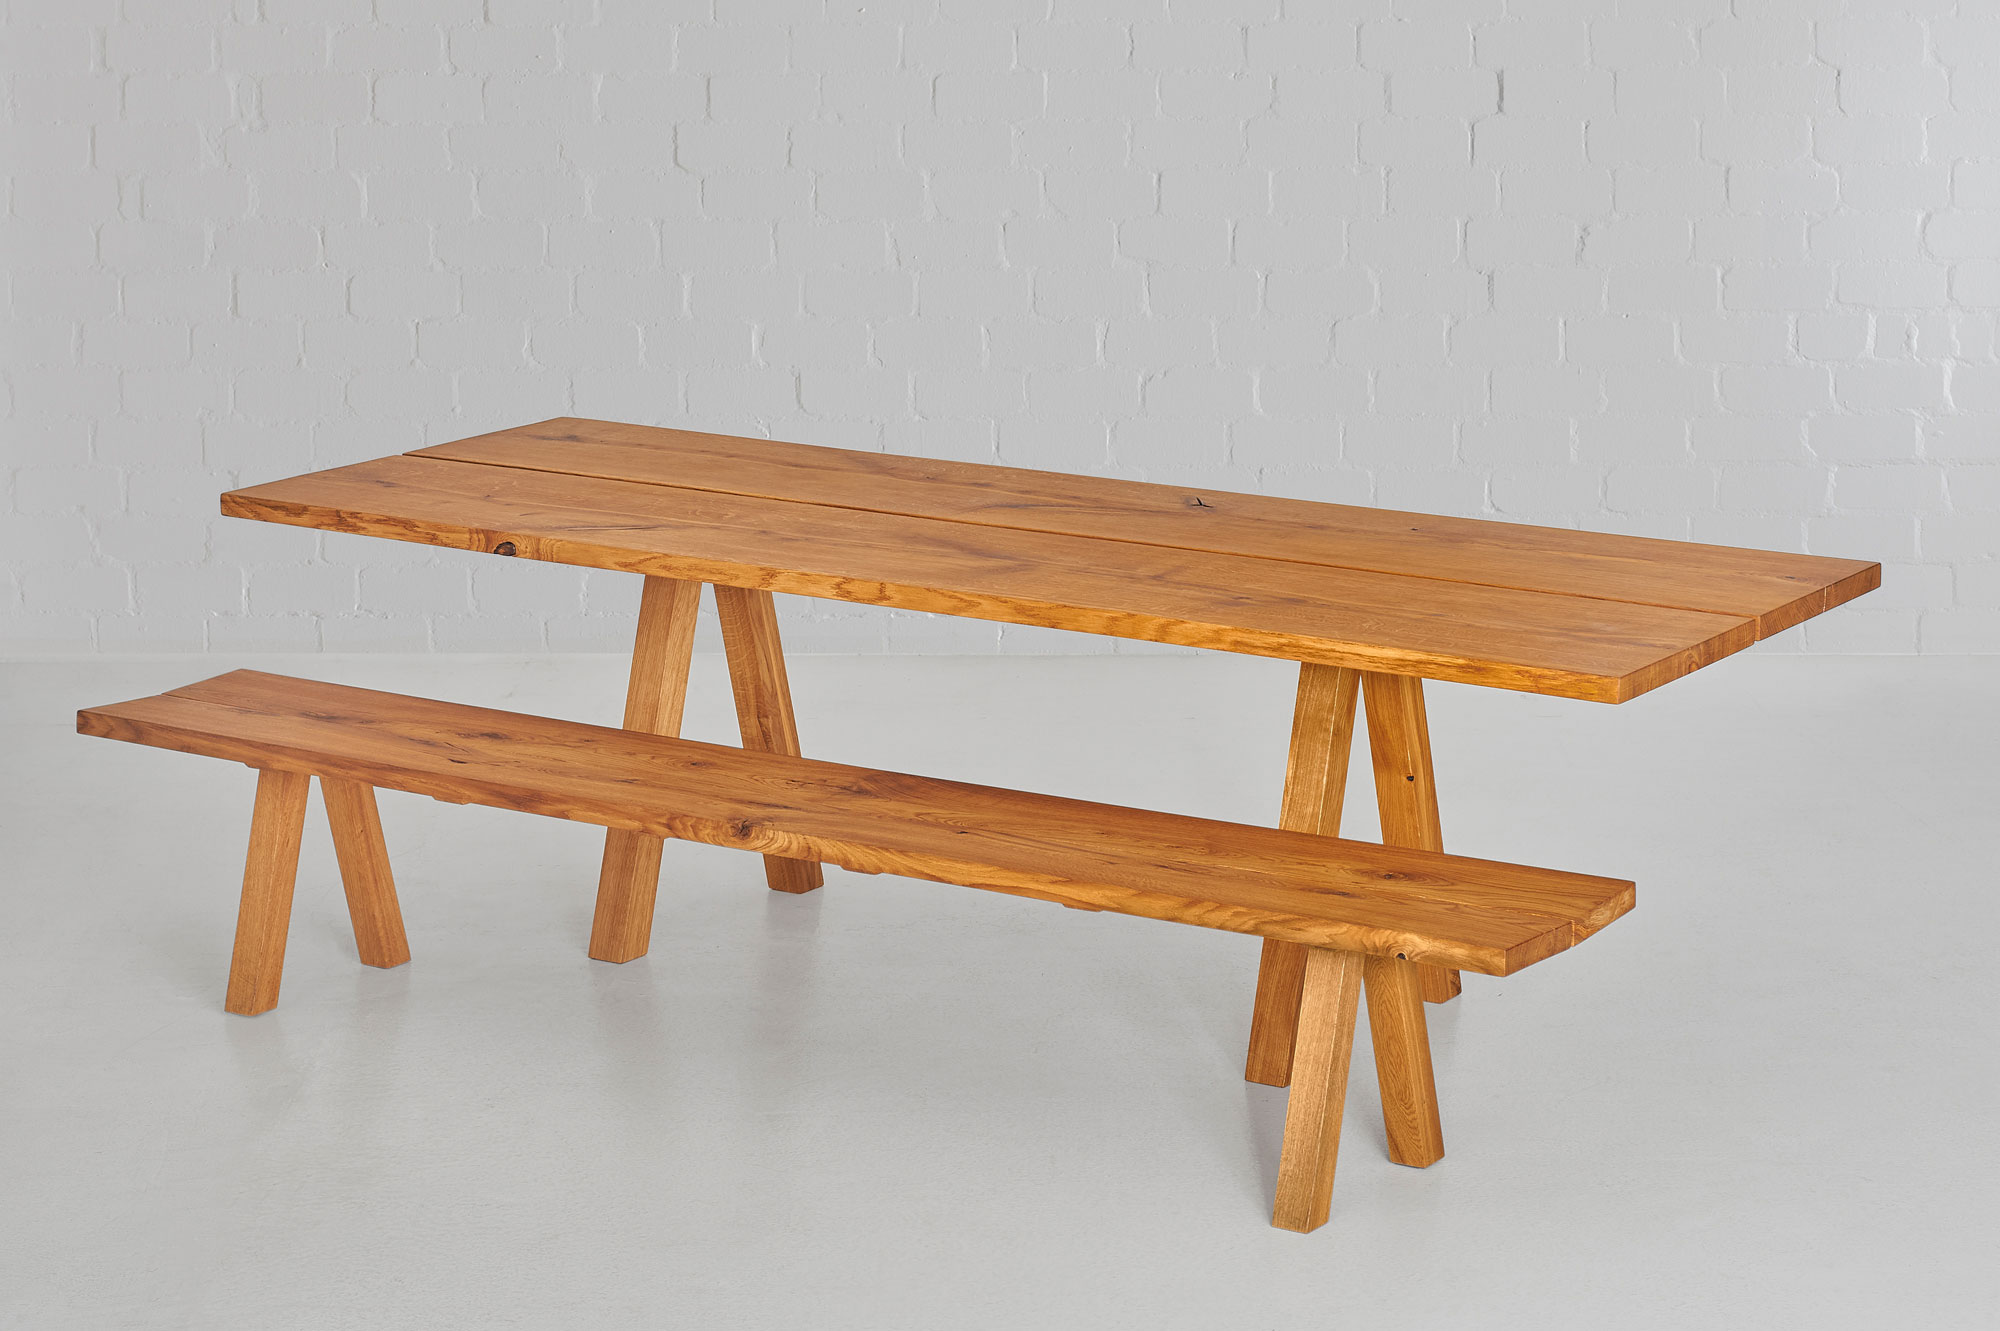 Designer Tree Trunk Table PAPILIO 0469 custom made in solid wood by vitamin design